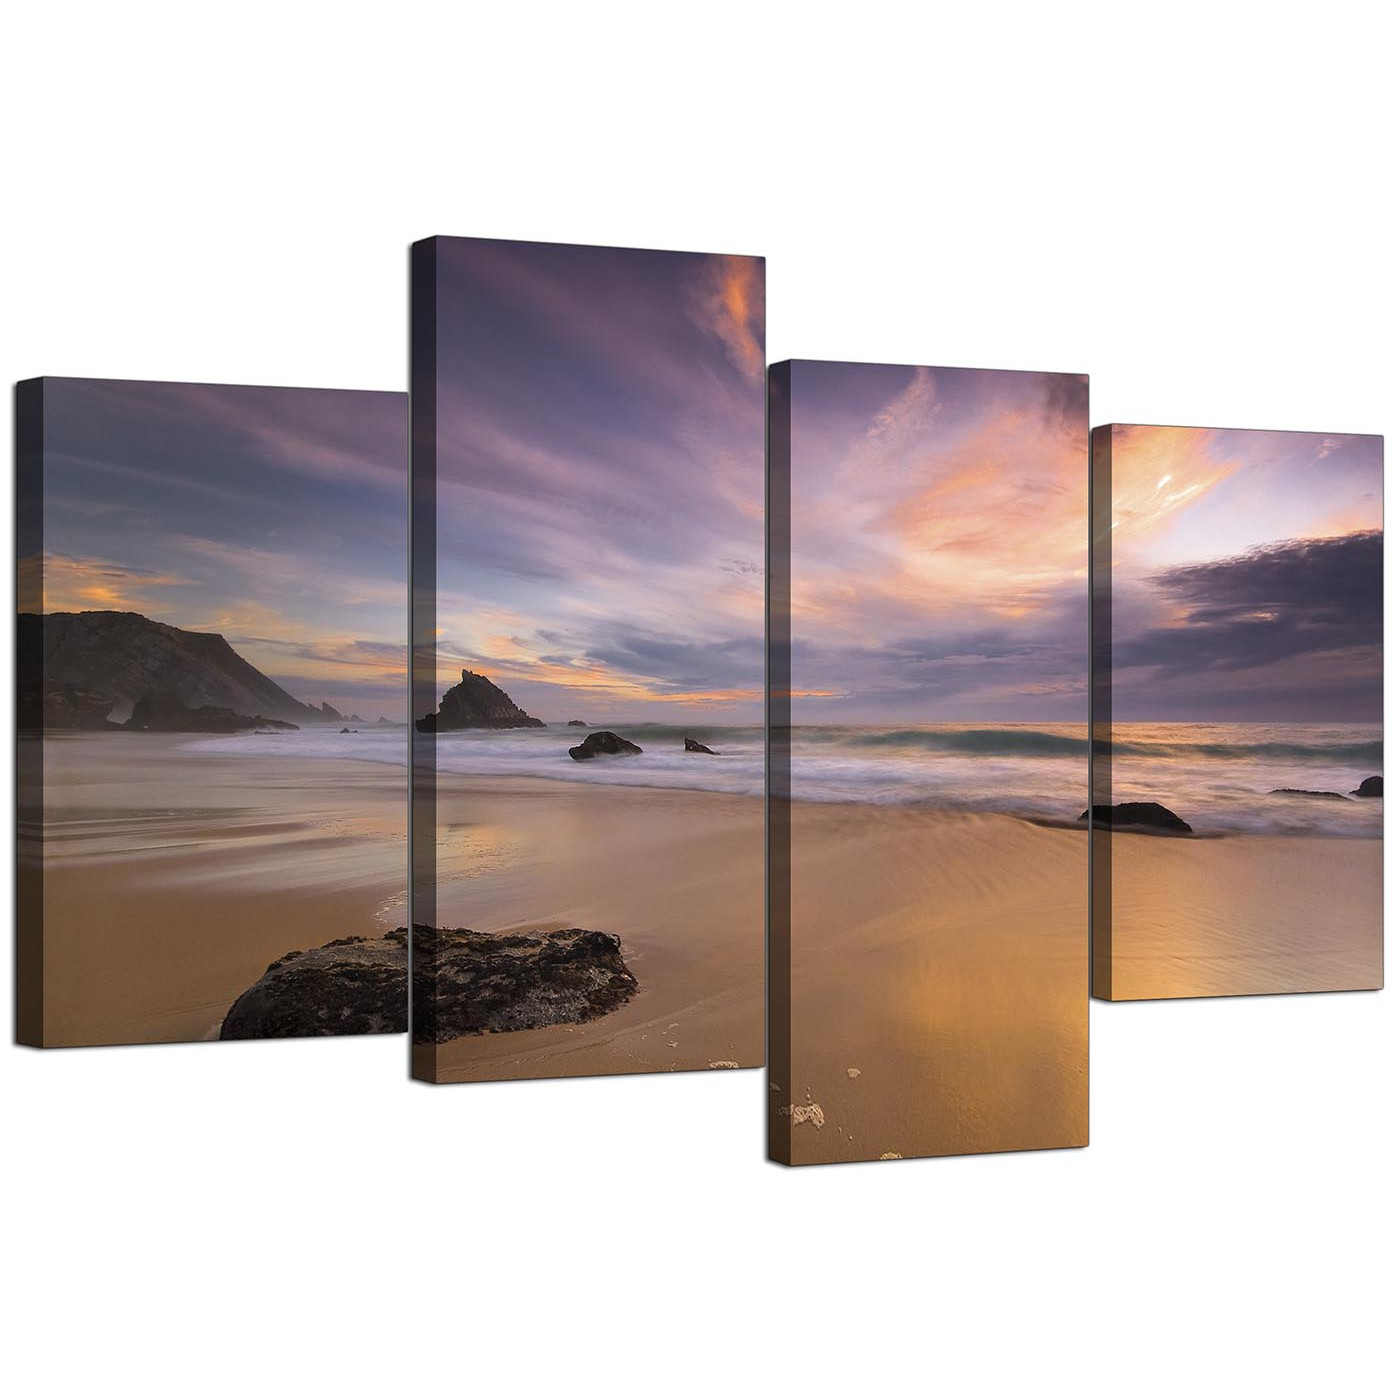 canvas prints of a beach sunset for your kitchen 4 panel. Black Bedroom Furniture Sets. Home Design Ideas